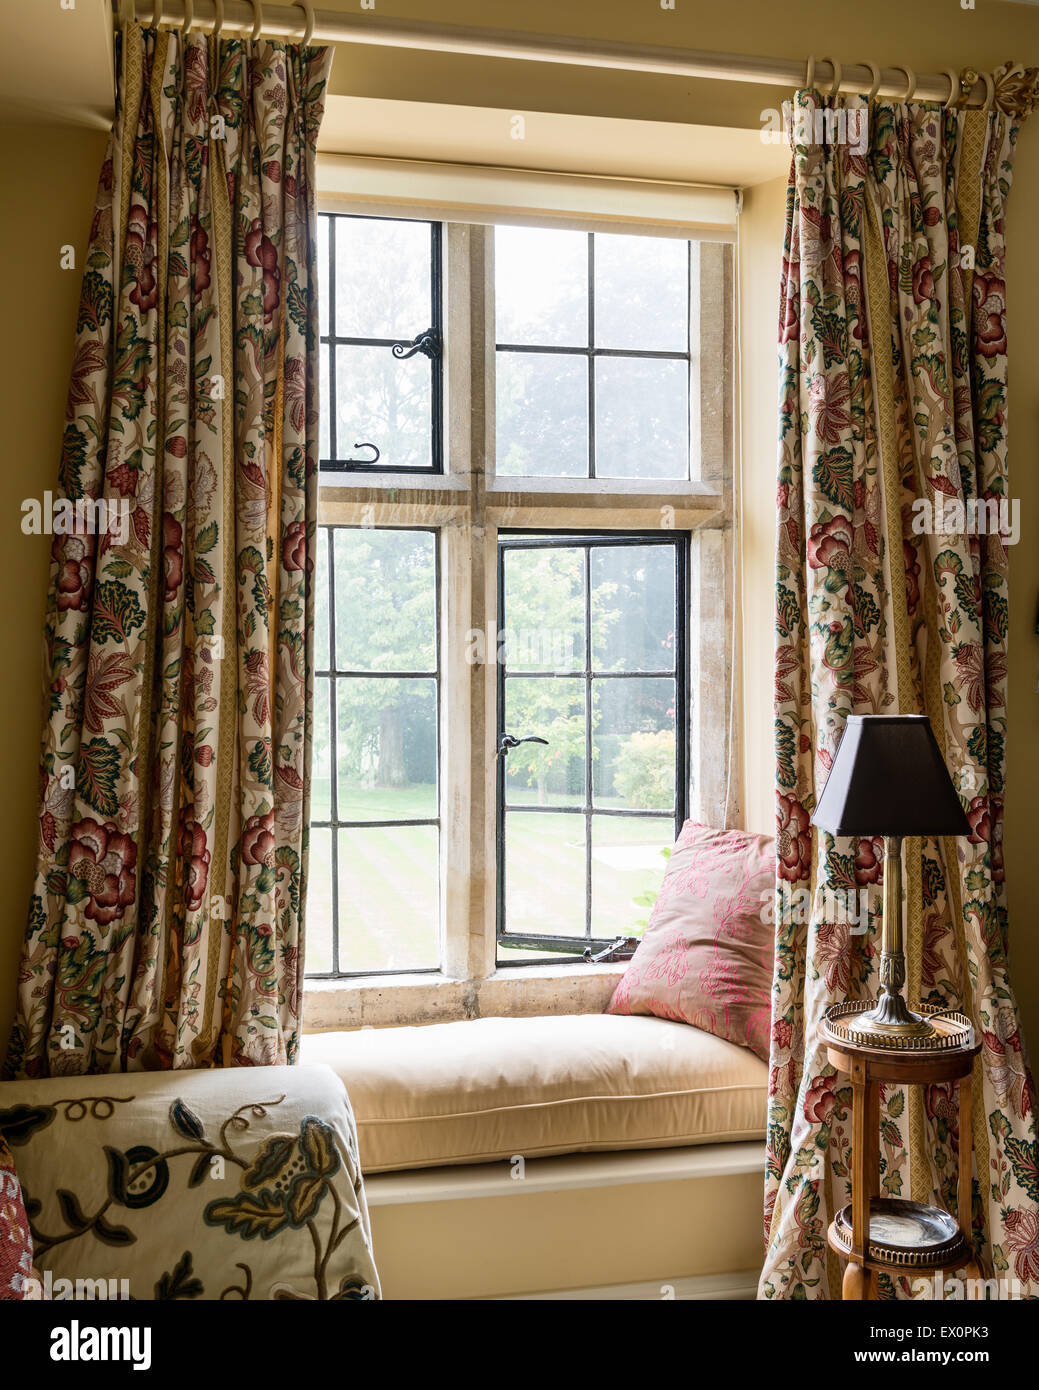 Floor length patterned curtains flanking window seat - Stock Image